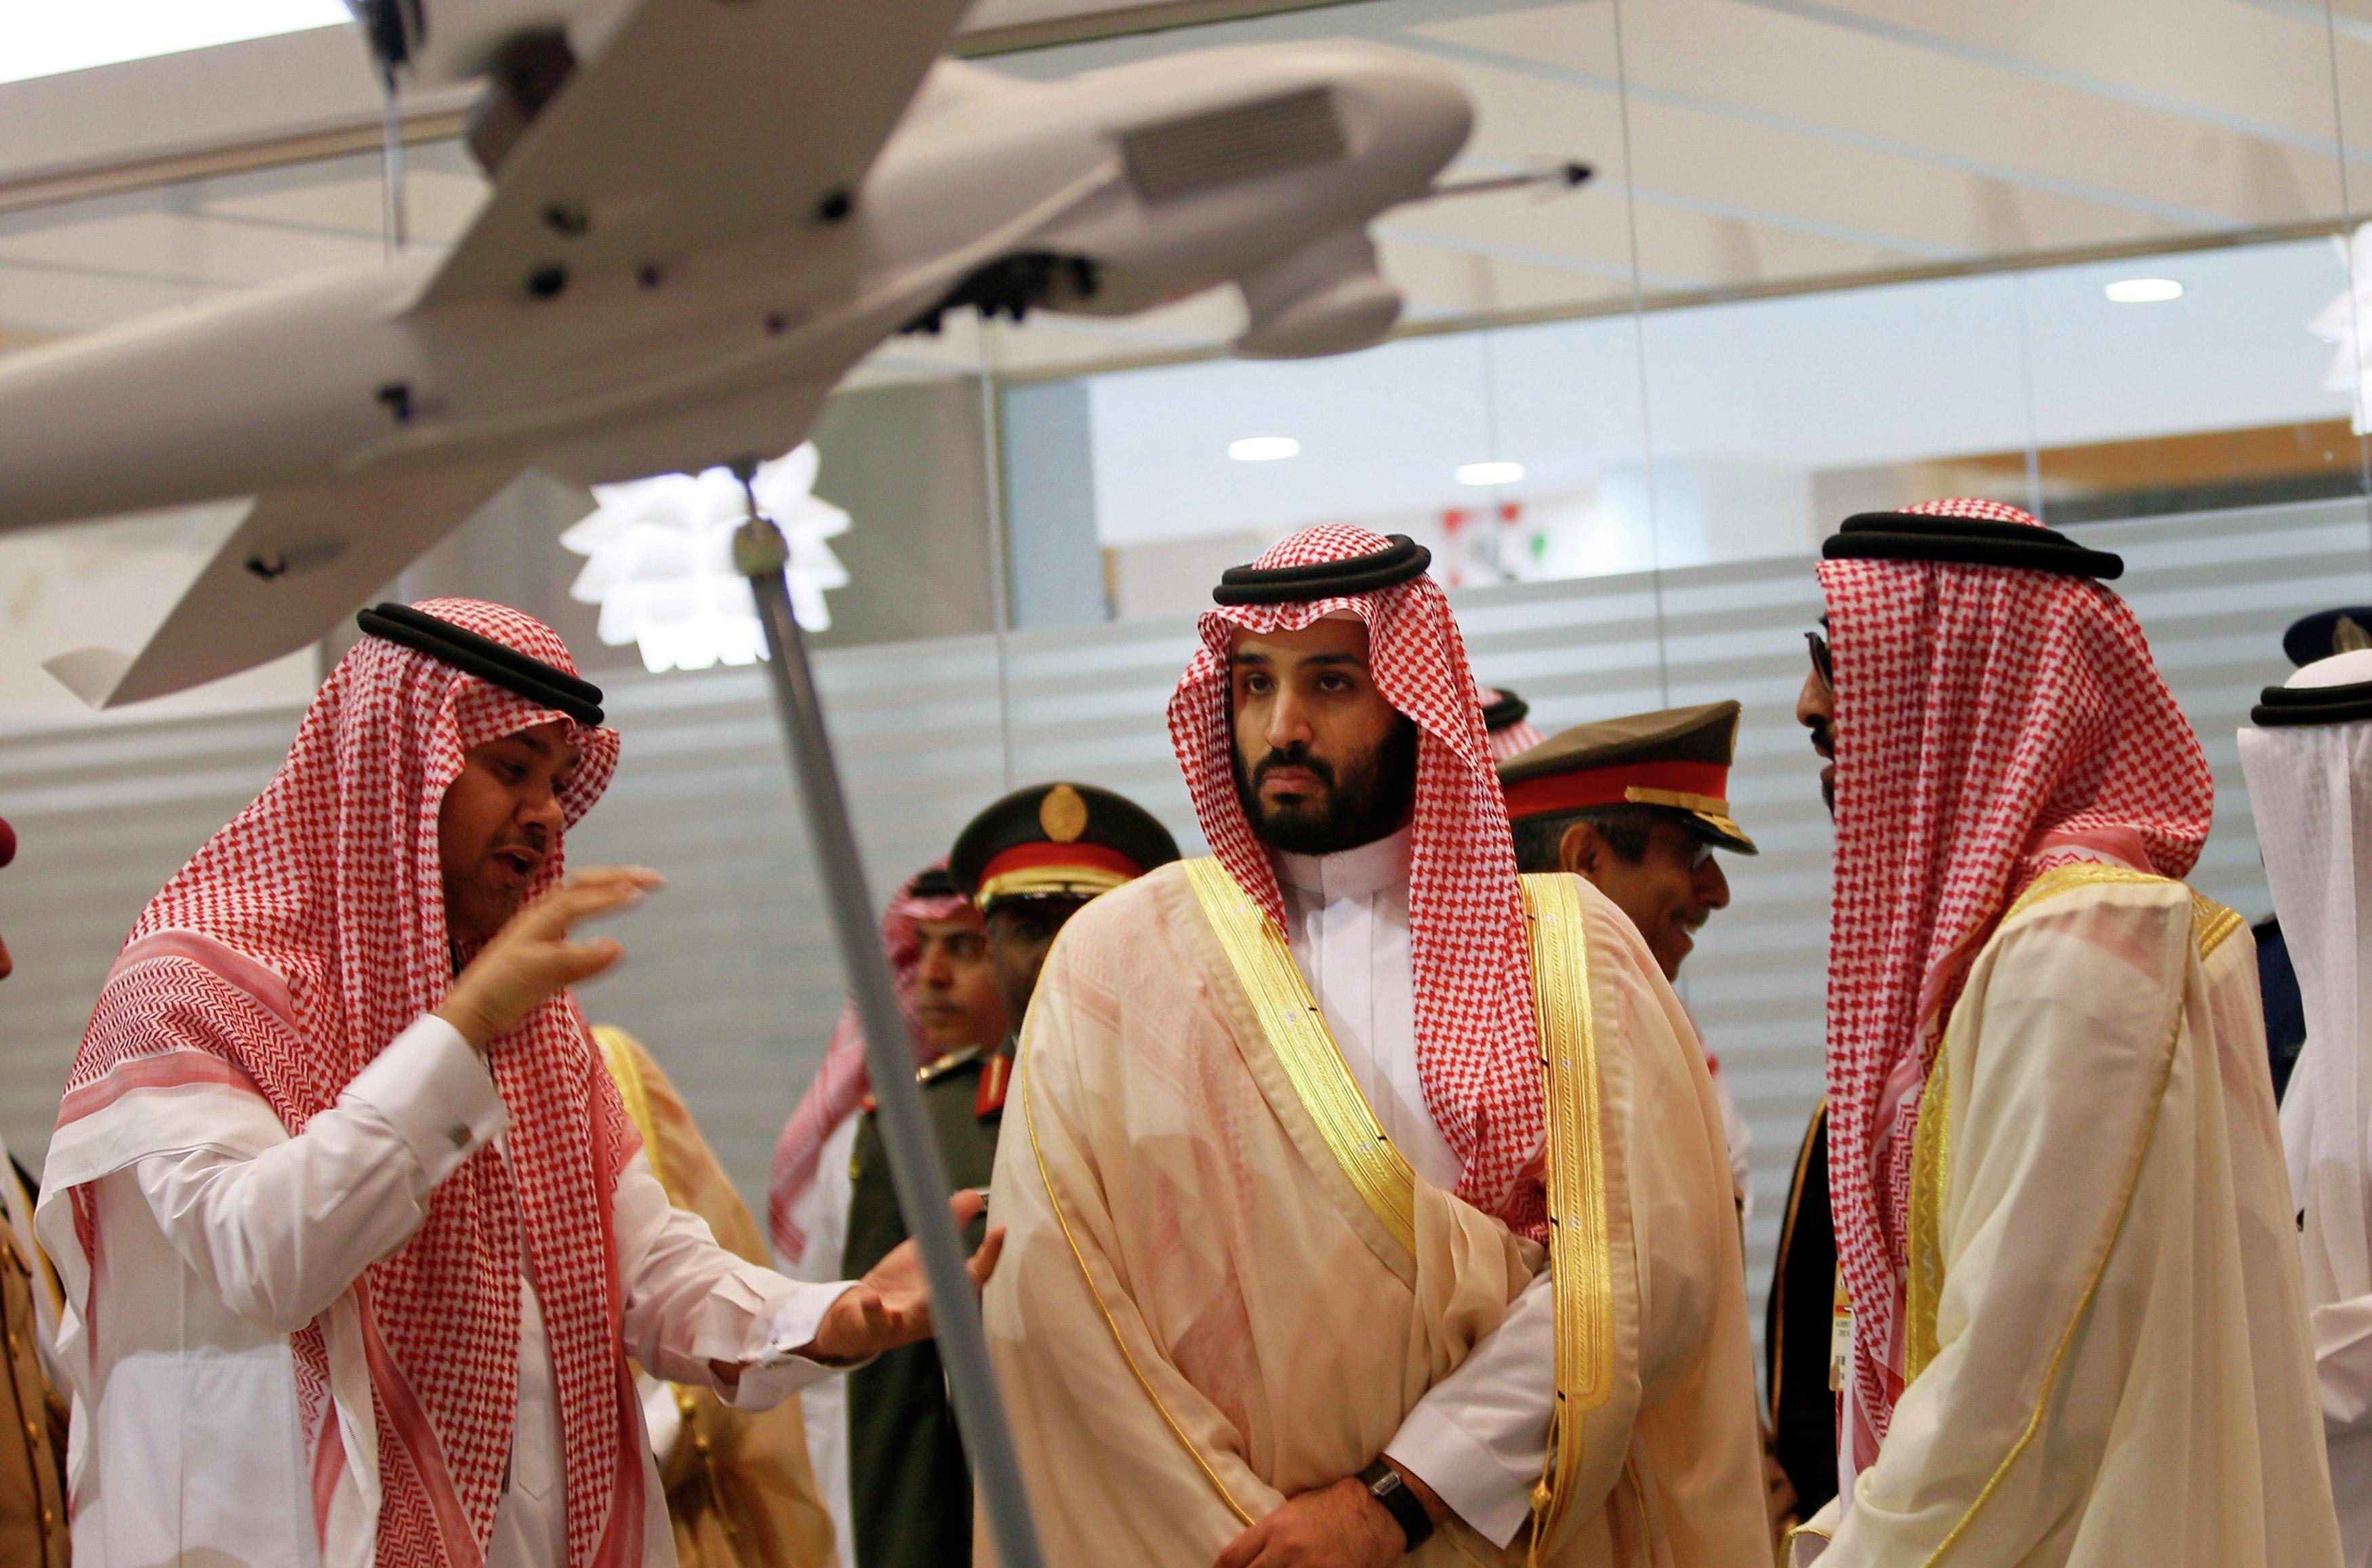 Saudi Defence Minister, Prince Mohammad bin Salman (C), visits the International Defence Exhibition and Conference (IDEX) in Abu Dhabi February 22, 2015.